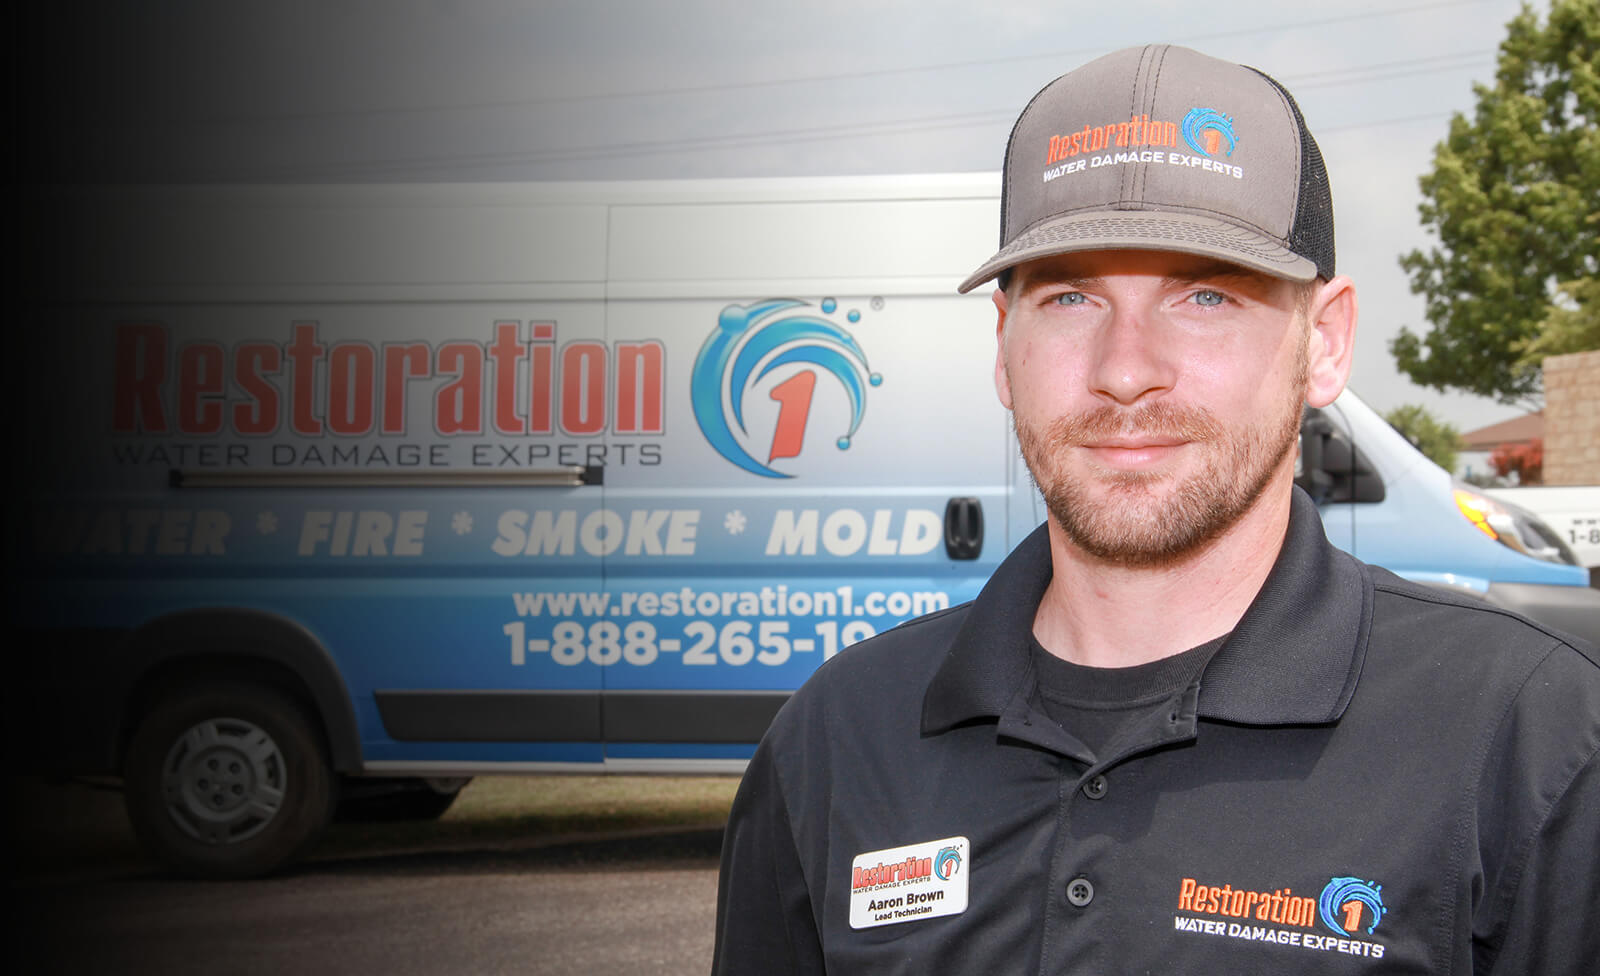 Restoration franchise restoration 1 technician in front of truck